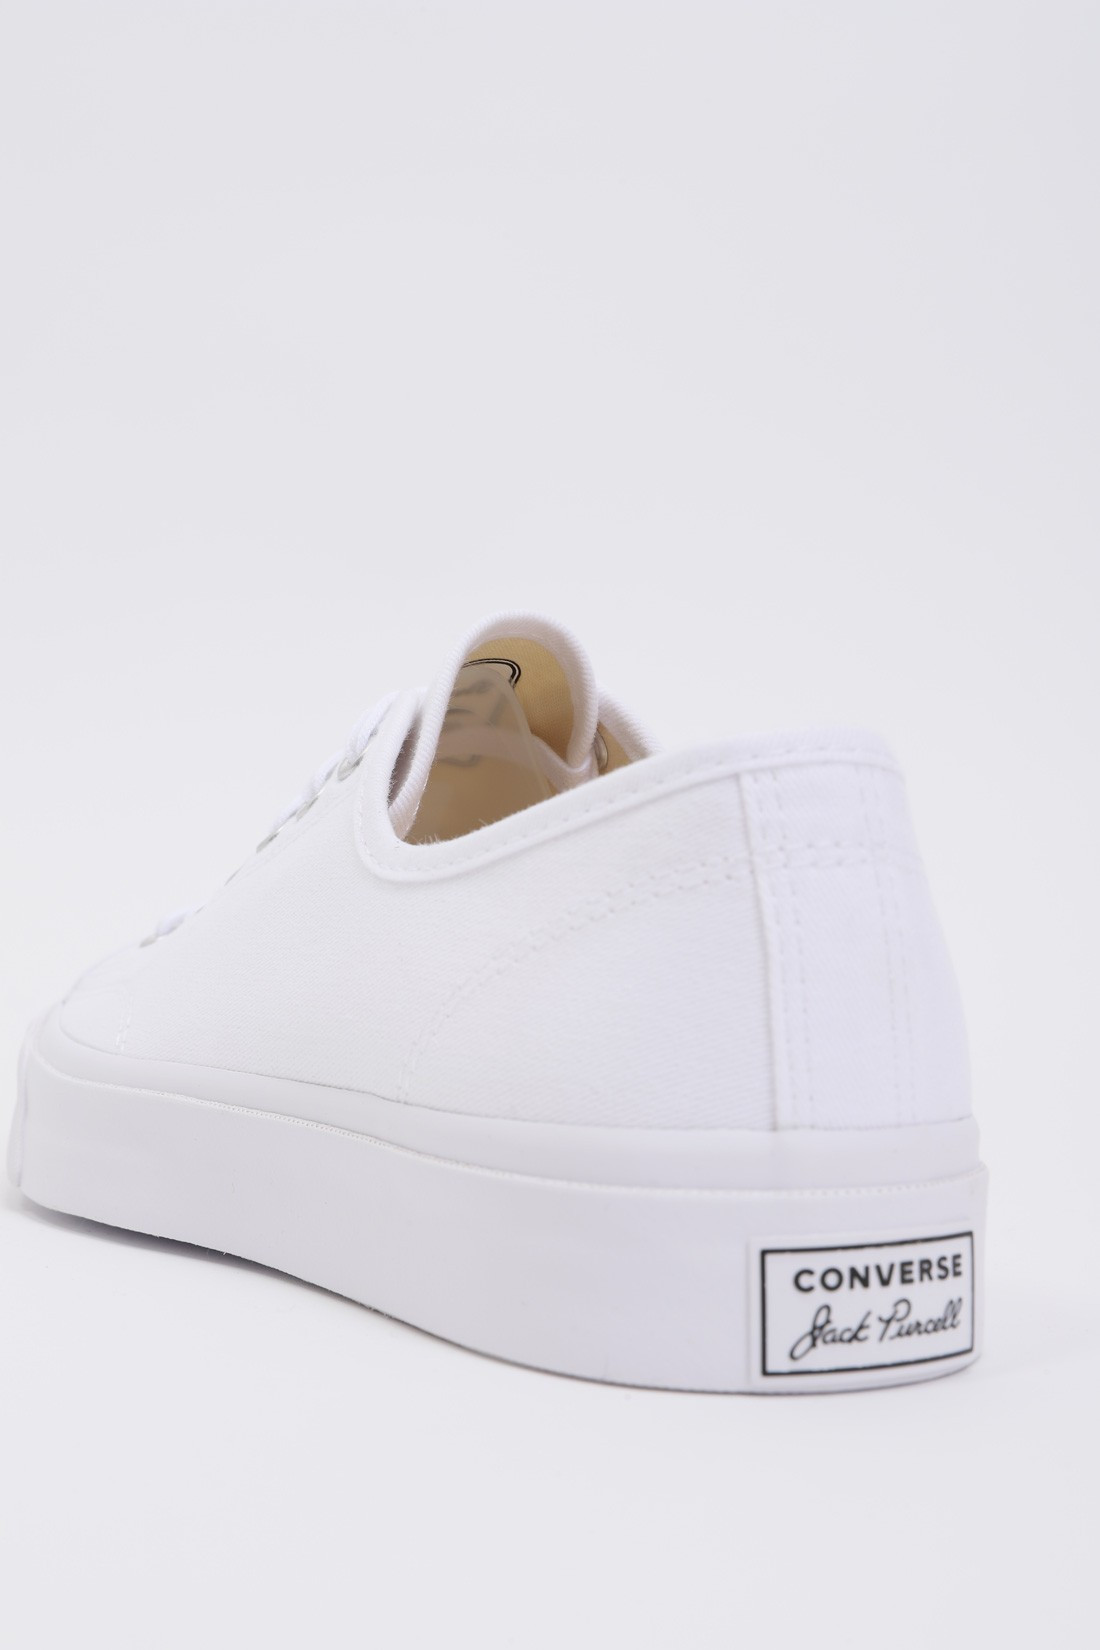 CONVERSE / Jack purcell ox White